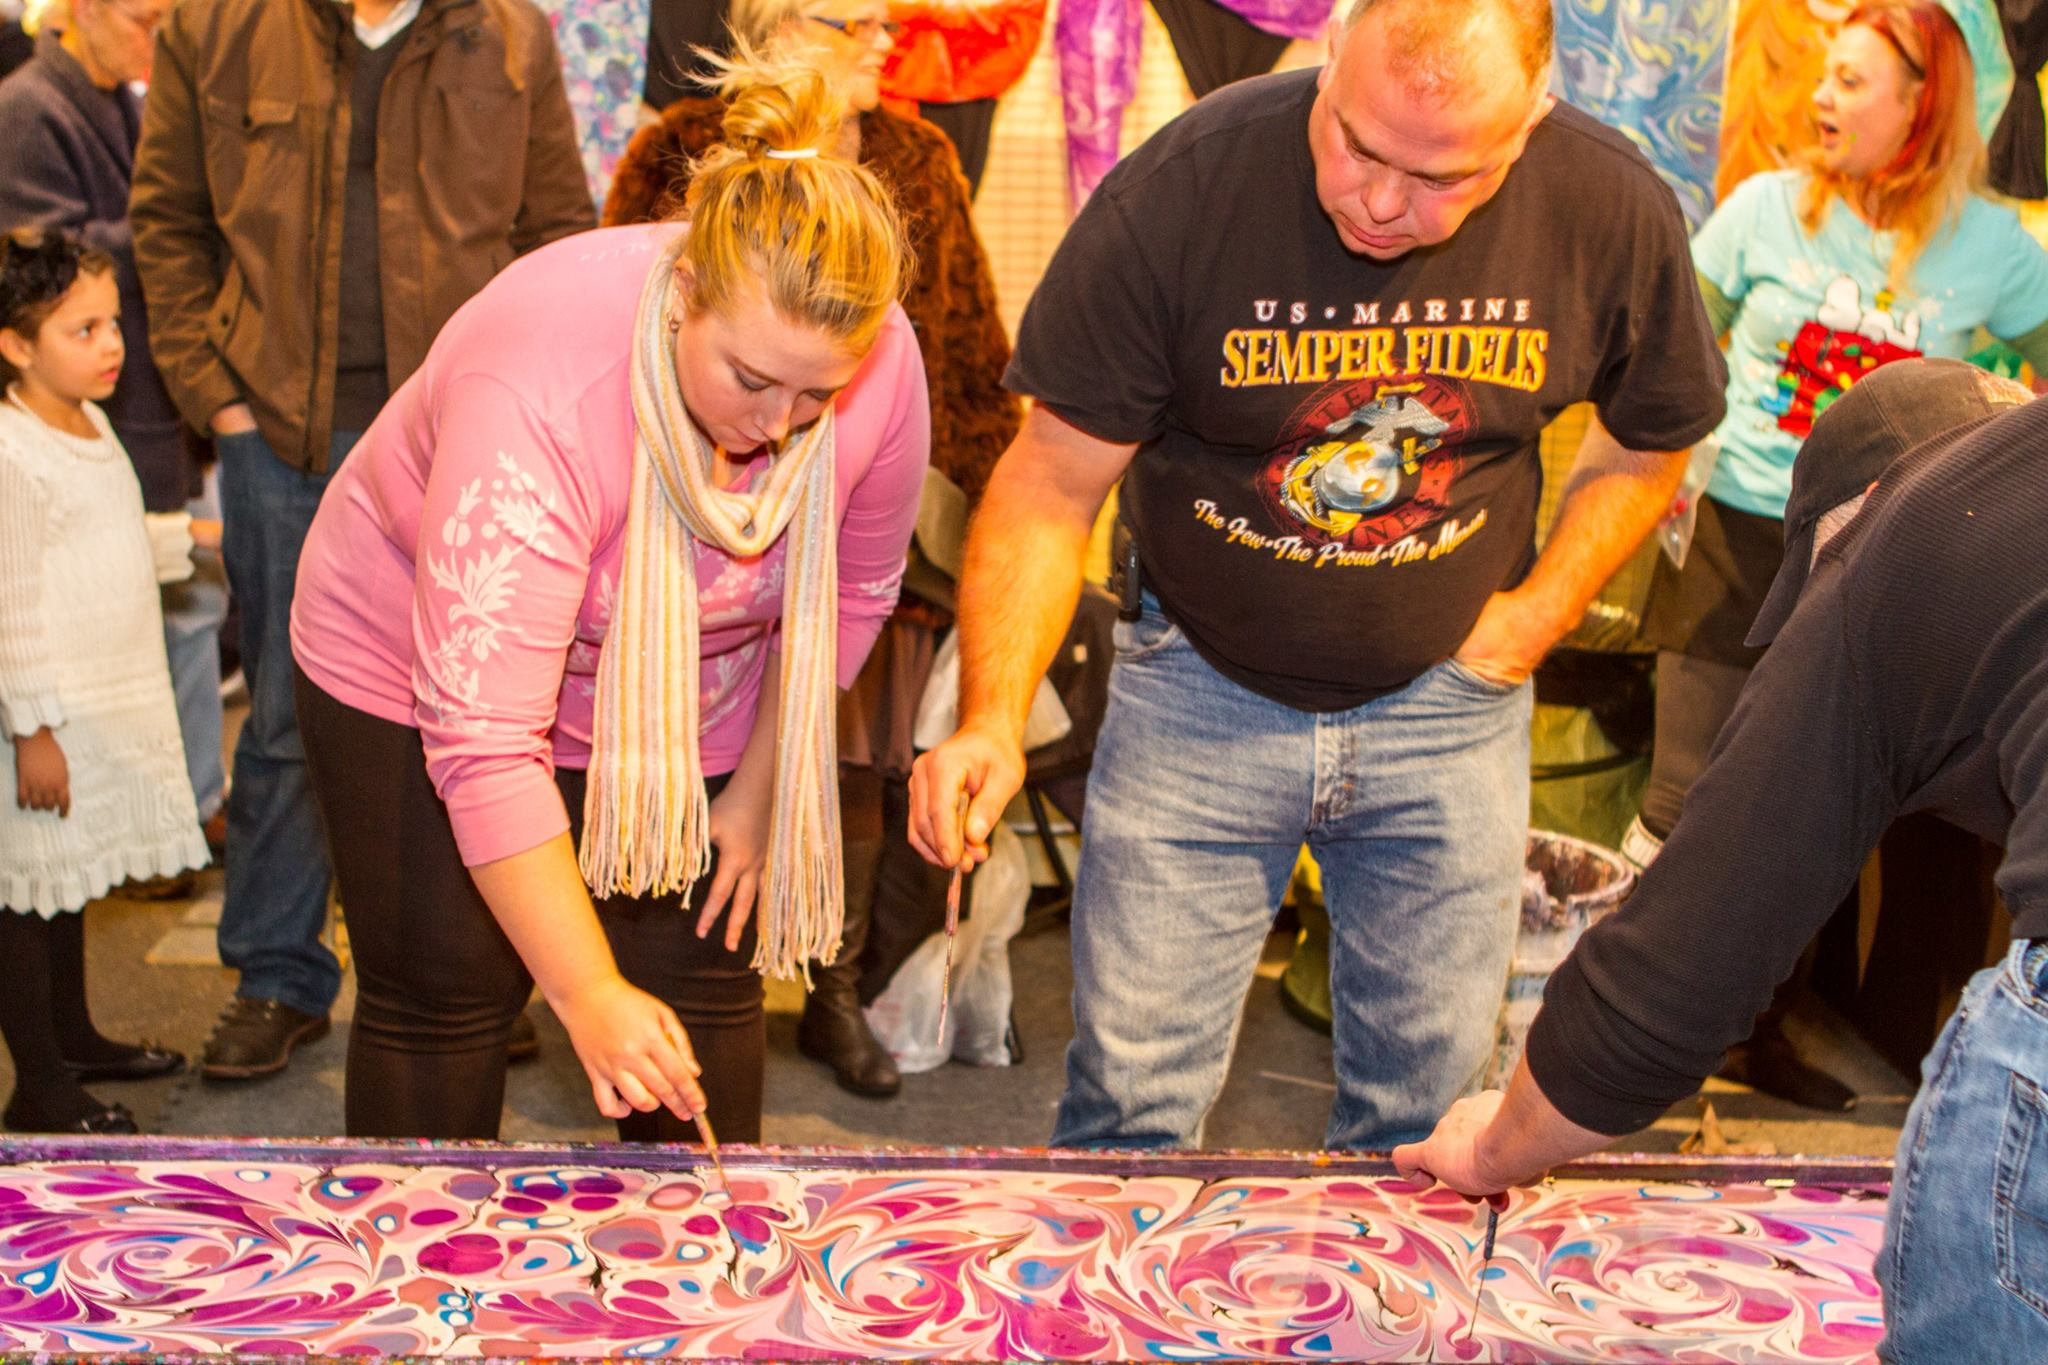 Waterford Fair-goers trying Turkish marbling.